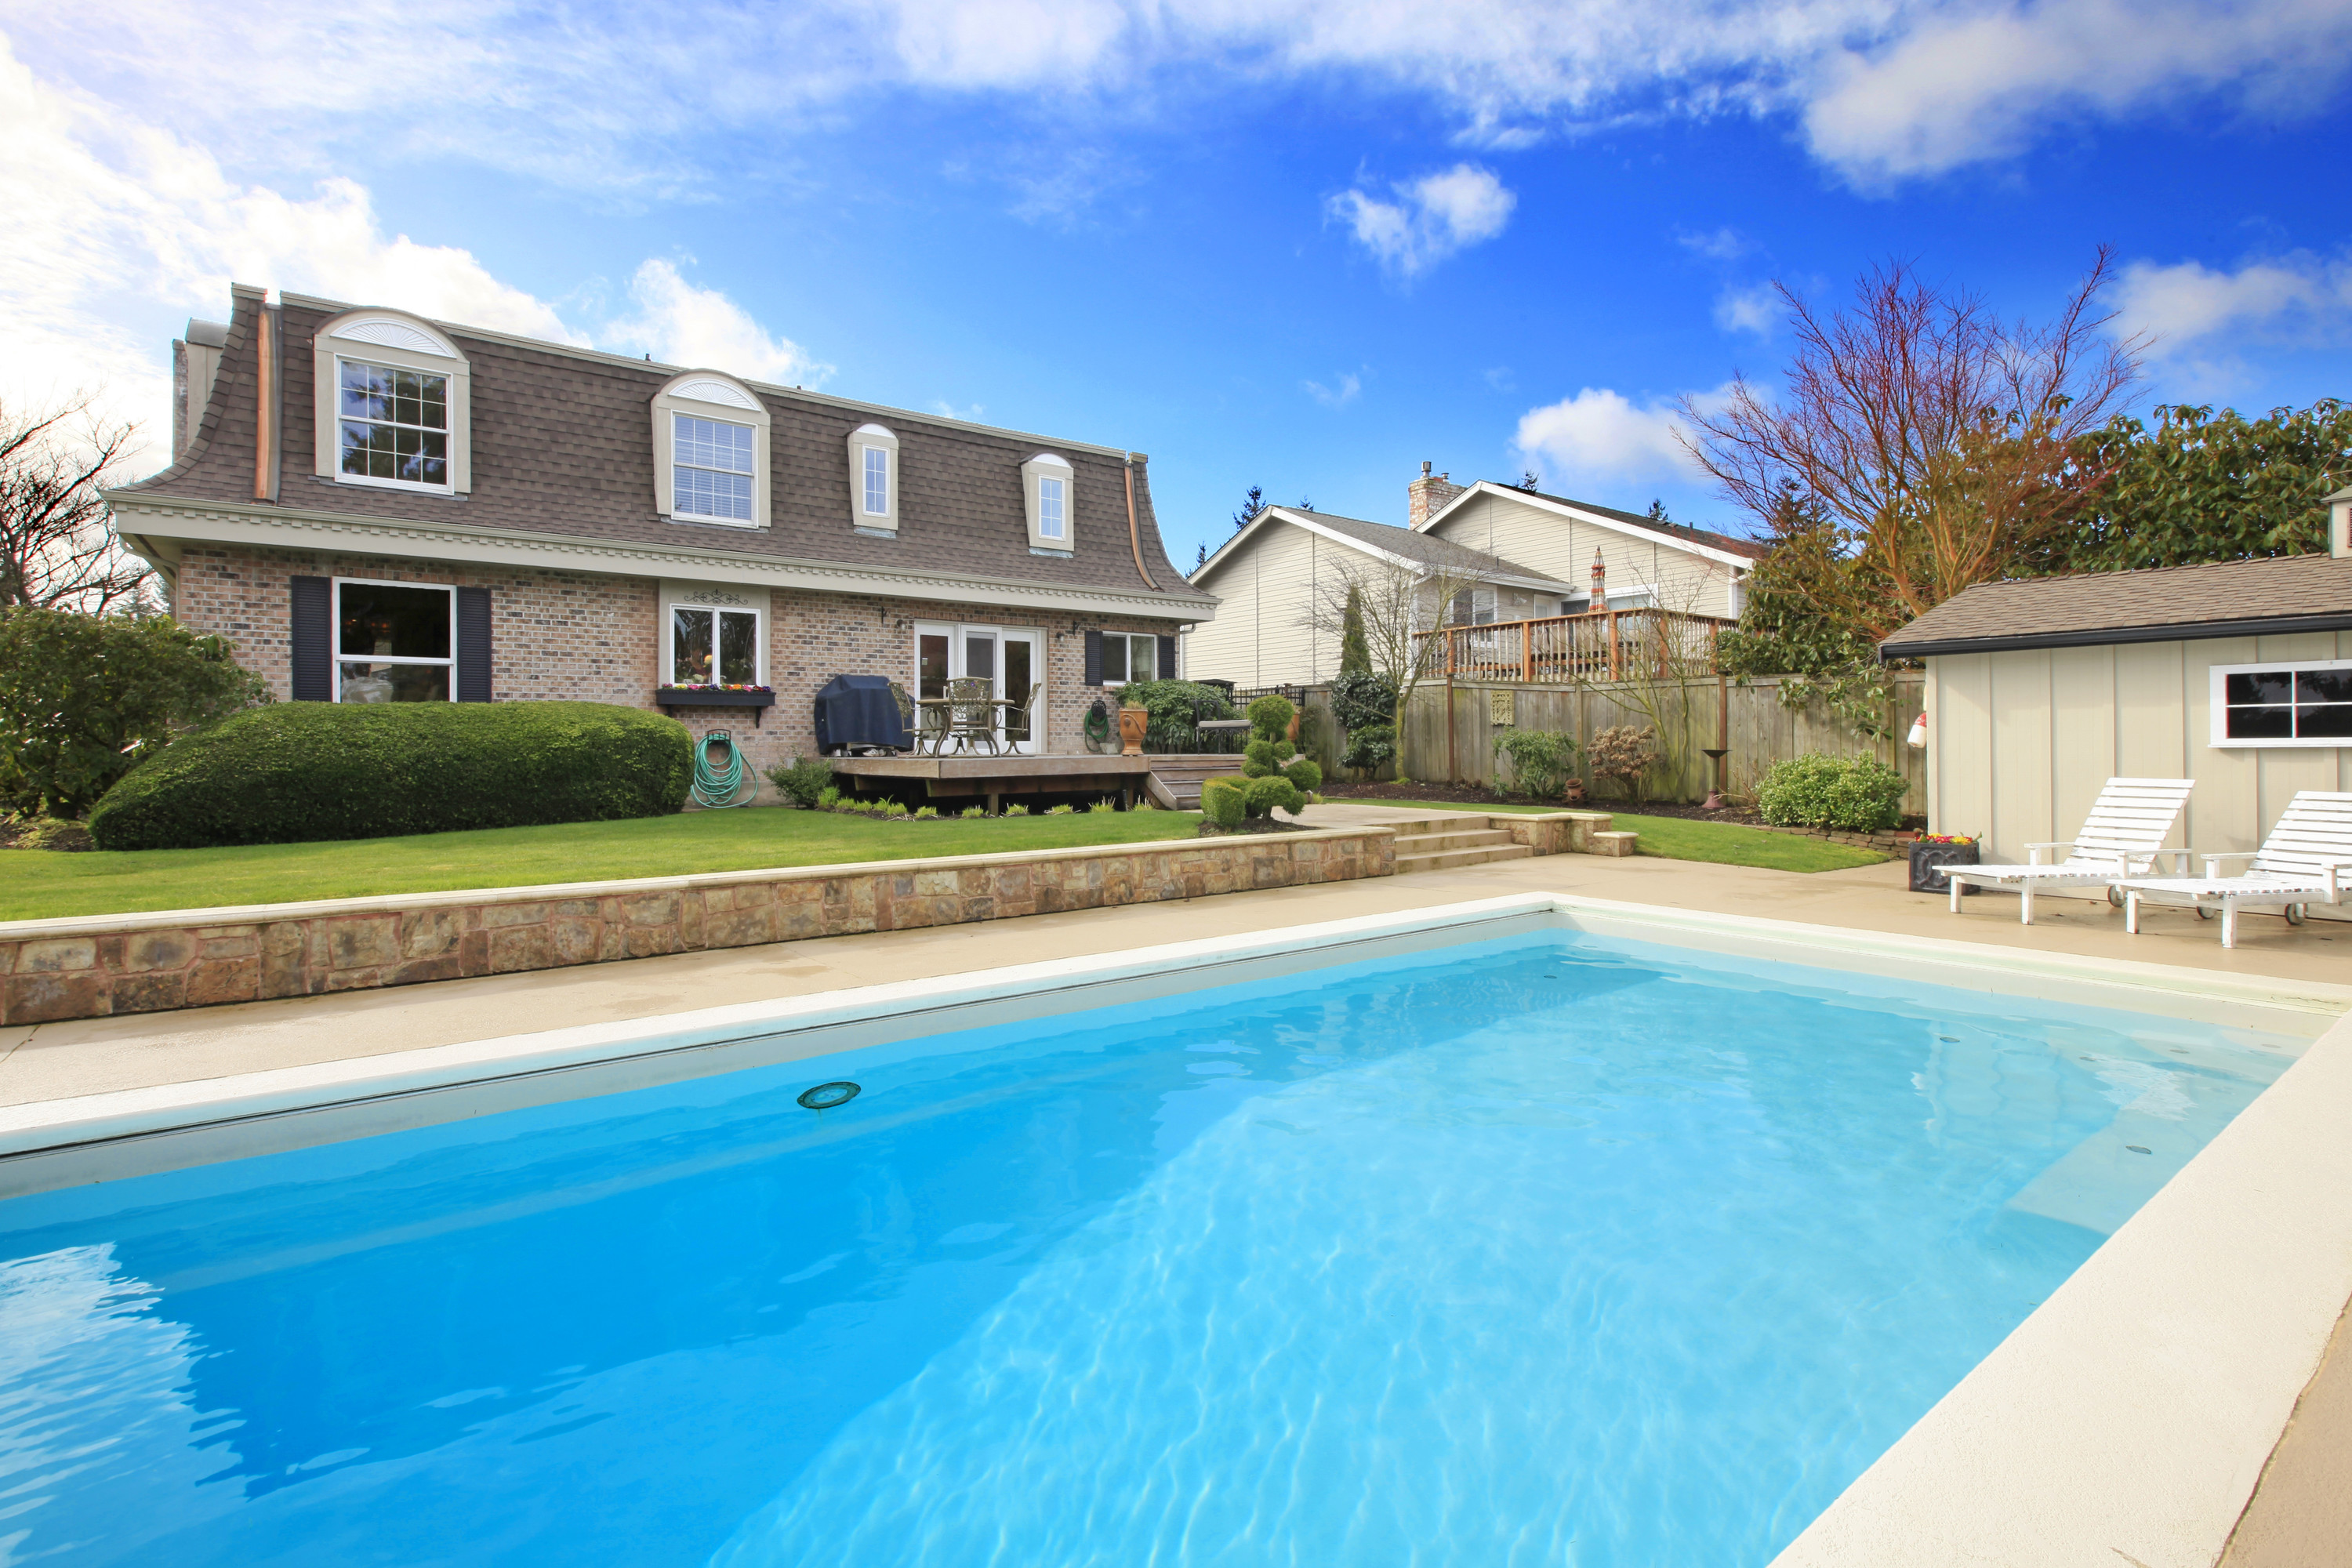 Plunge into Pool Planning